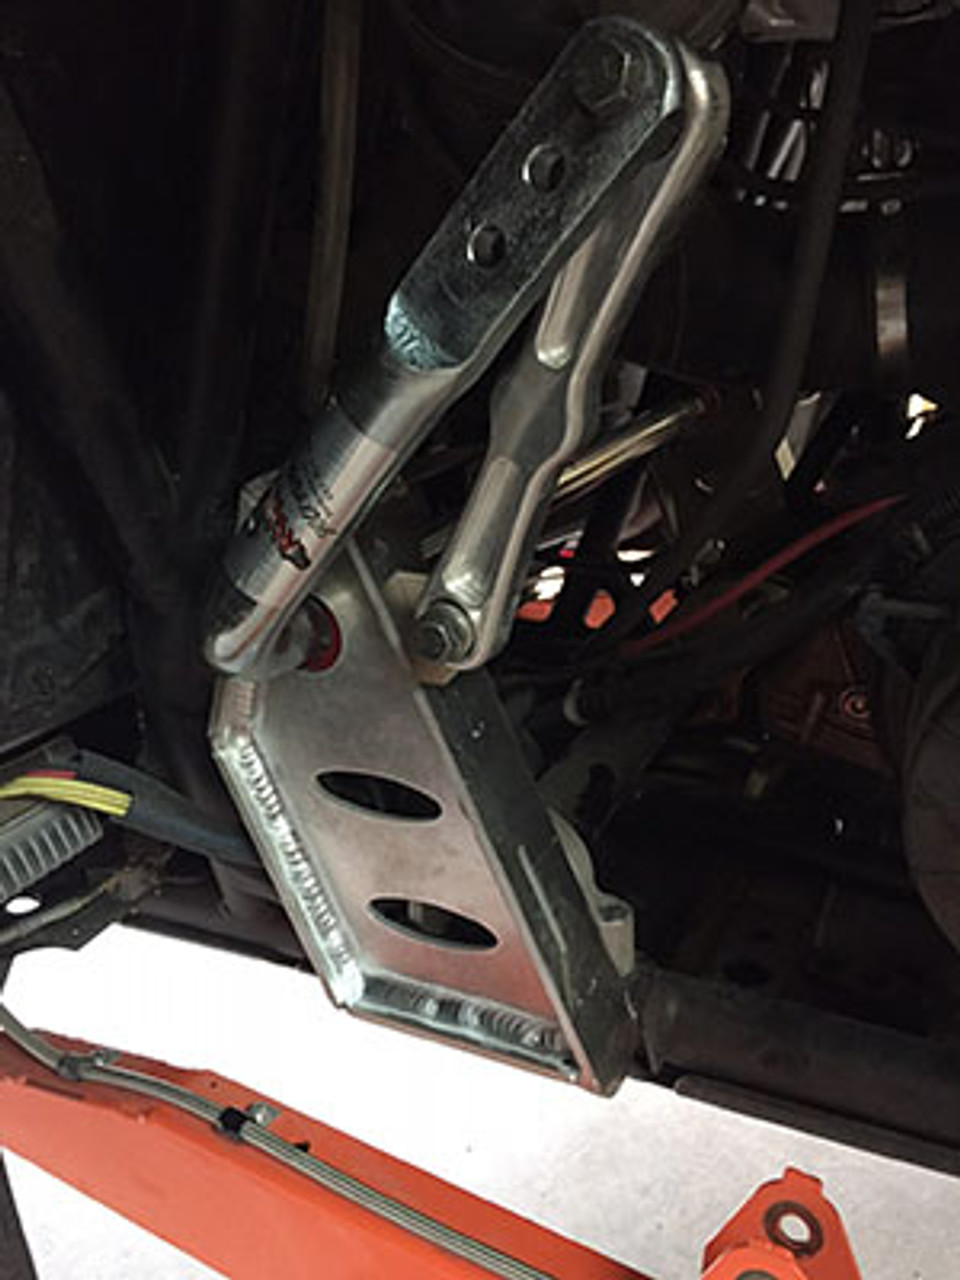 Sway bar function disabled for heavy rock crawling.